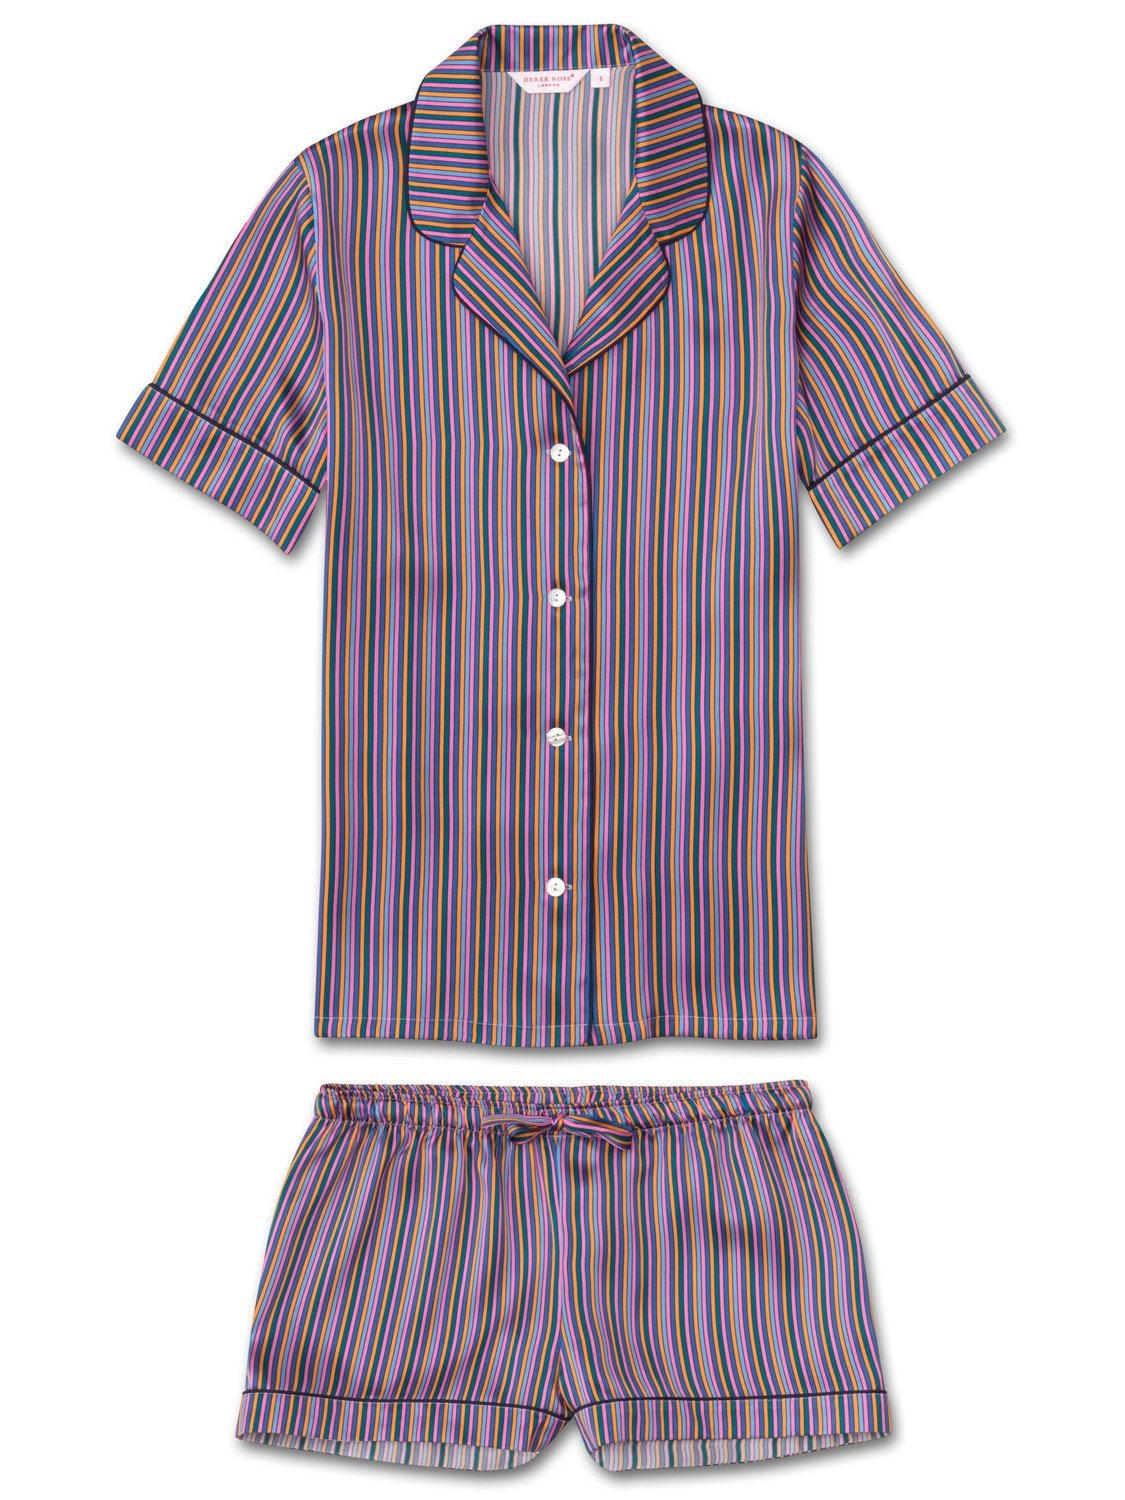 Women's Shortie Pyjamas Brindisi 21 Pure Silk Satin Multi